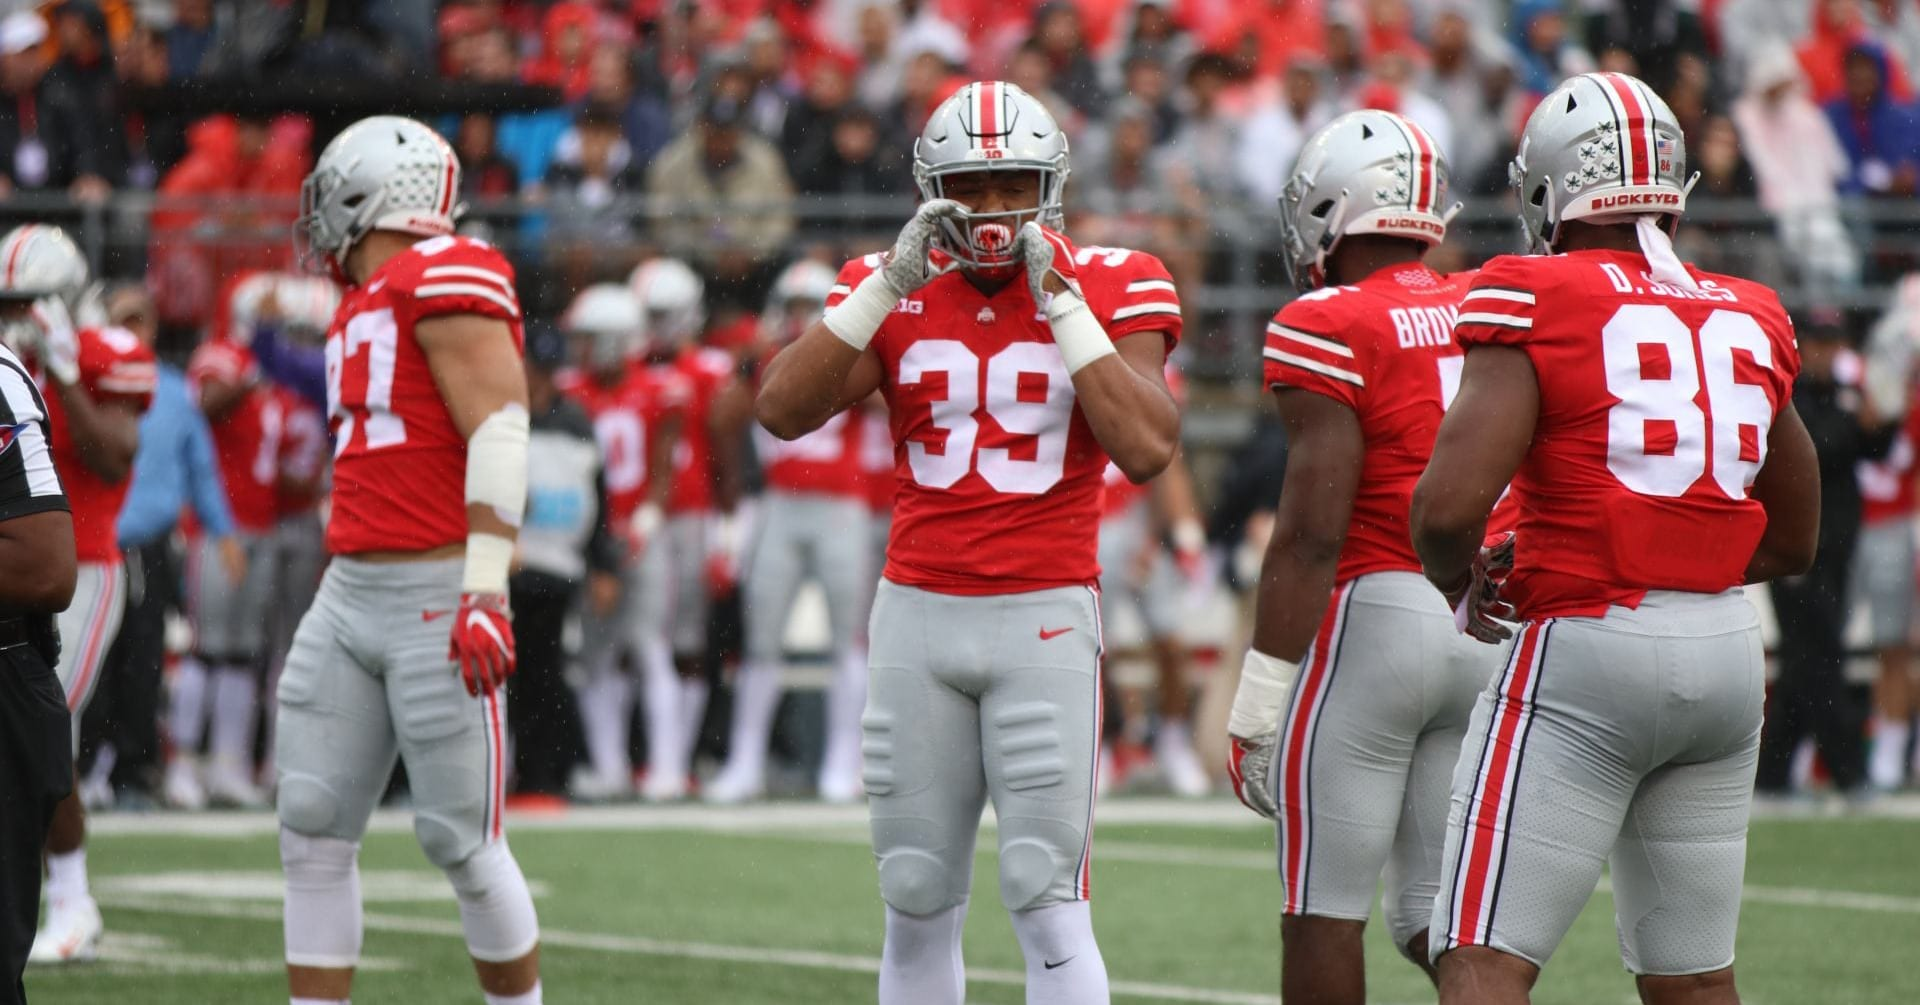 Football: Inexperienced linebackers expect improvements in second half of season